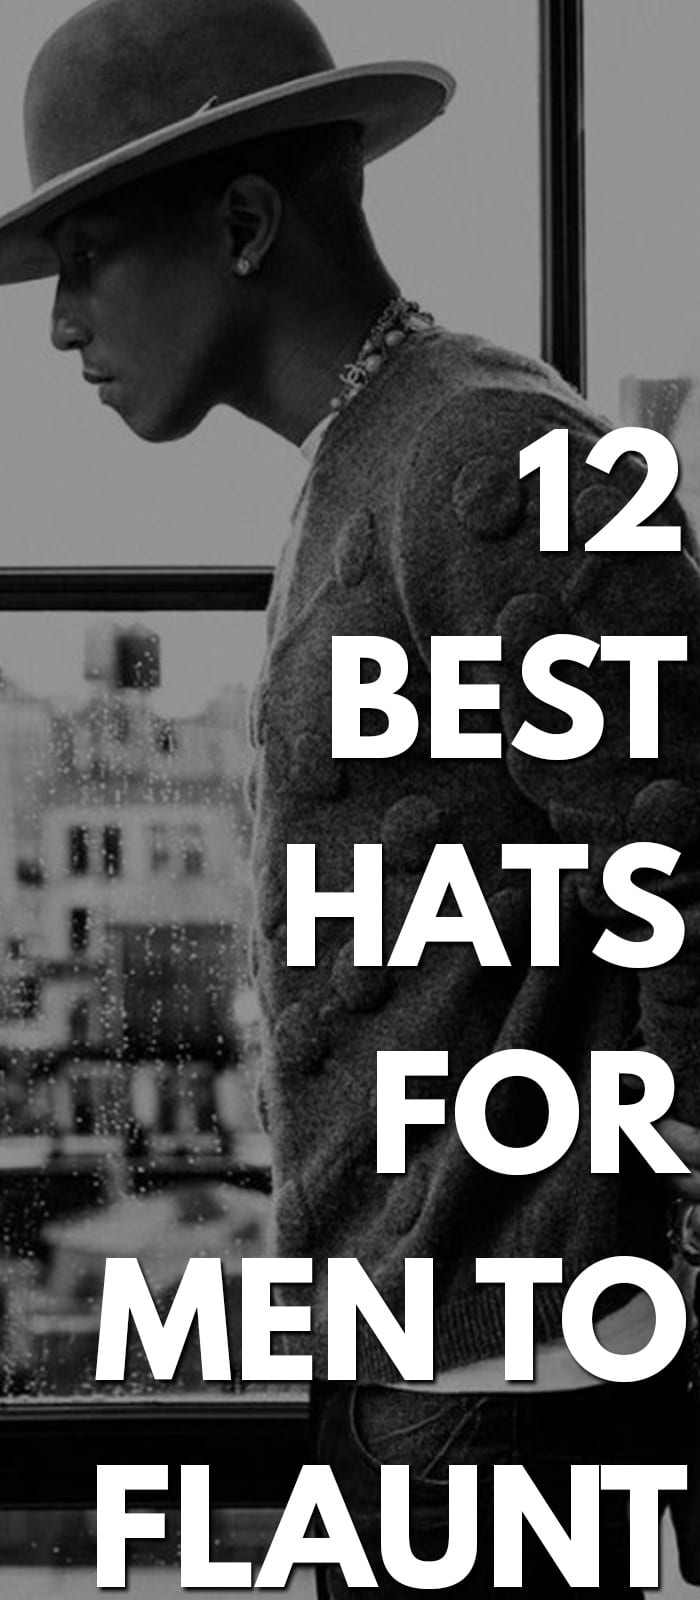 Best Hats For Men To Flaunt